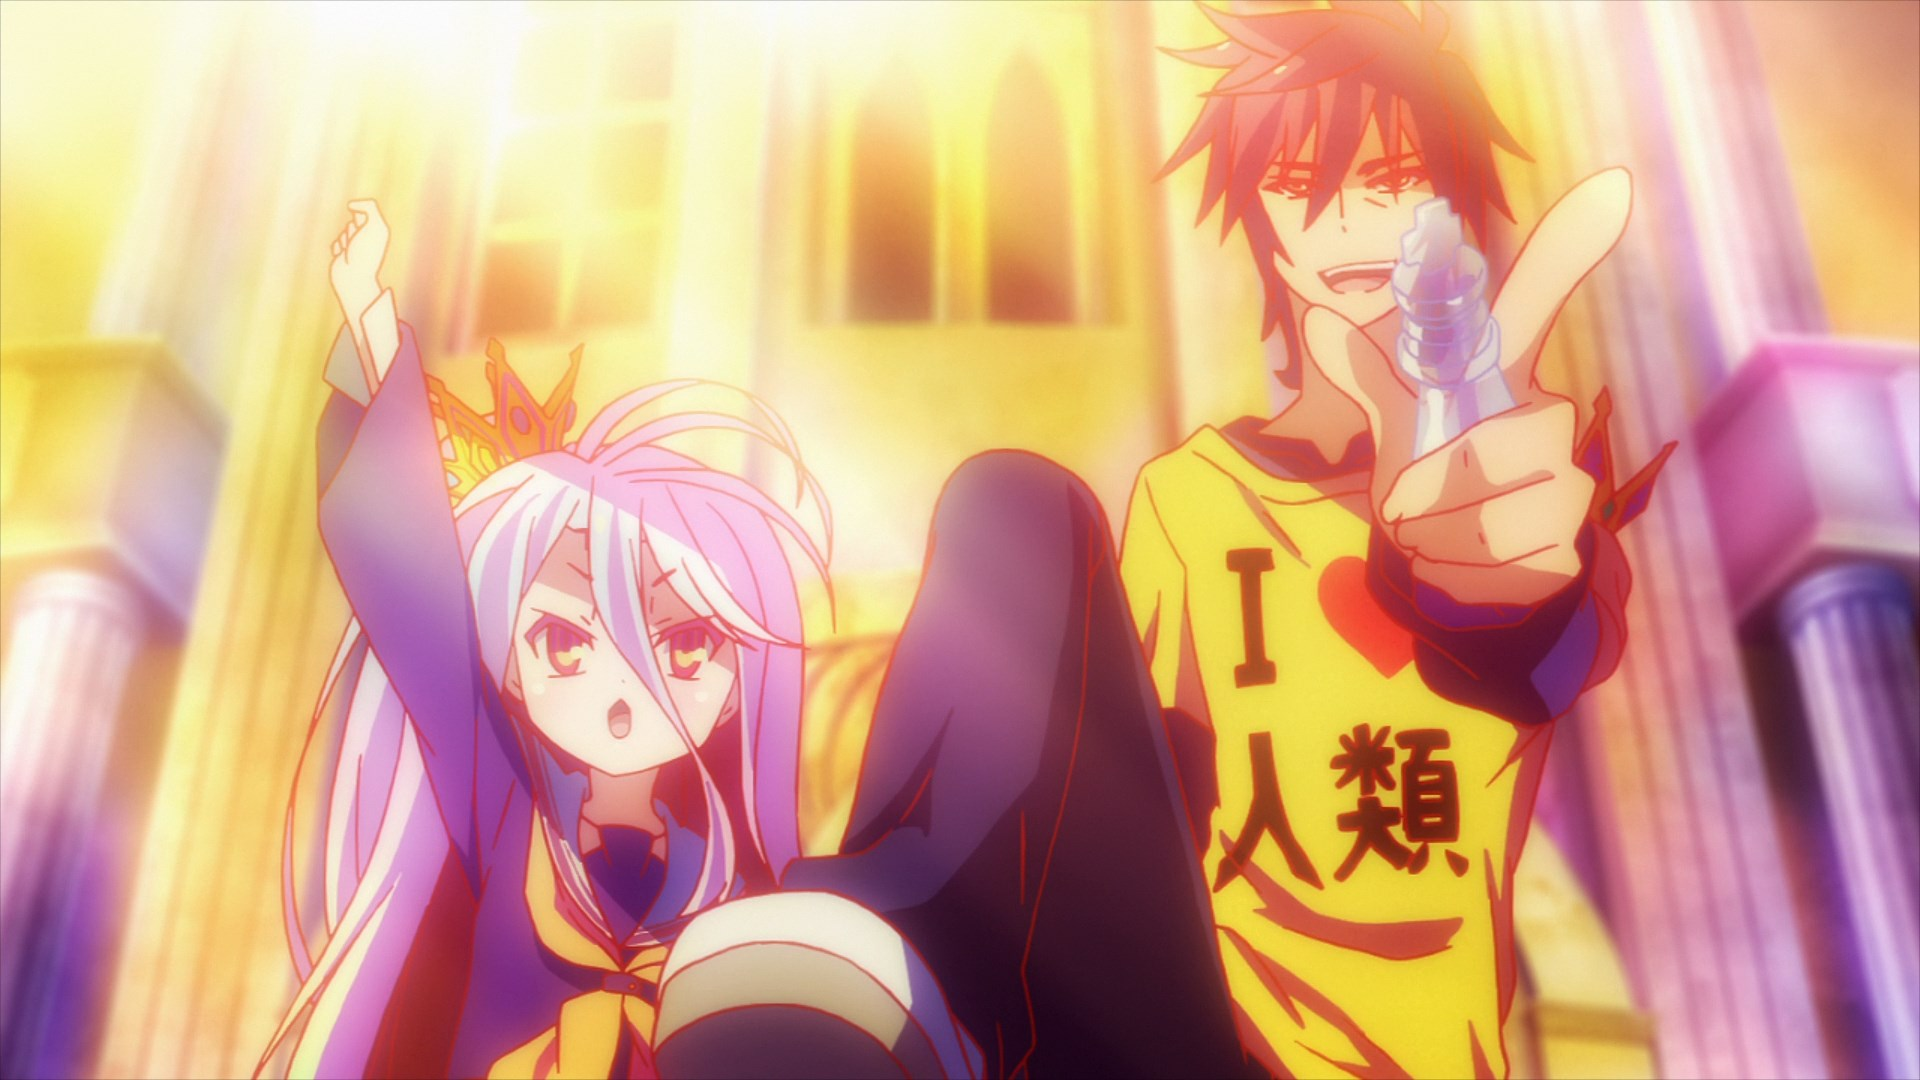 No Game No Life - 04.mkv_snapshot_18.05_[2015.12.28_19.54.07]